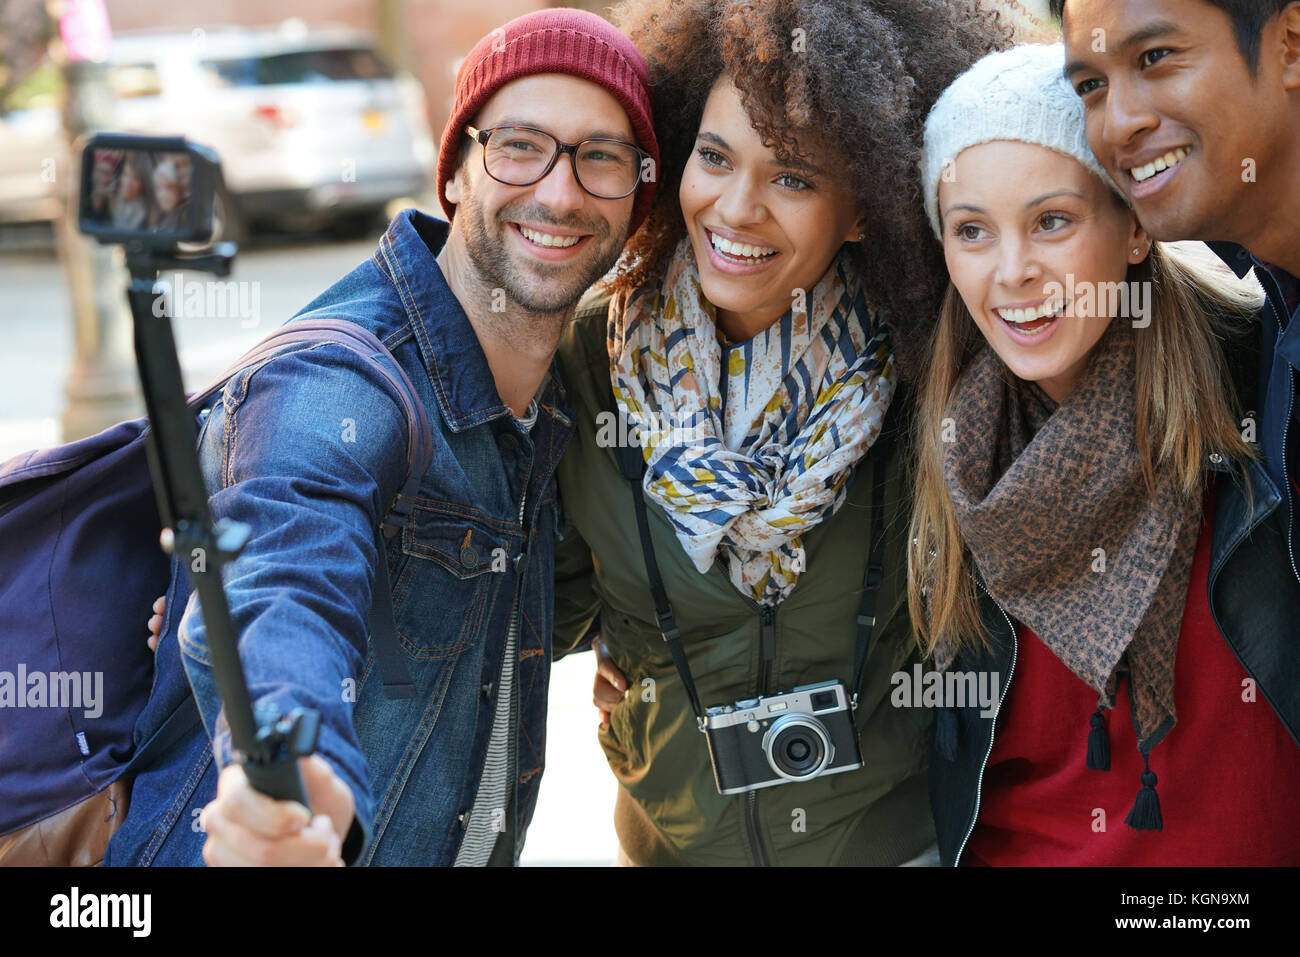 Group of friends on vacation taking selfie picture with camera - Stock Image